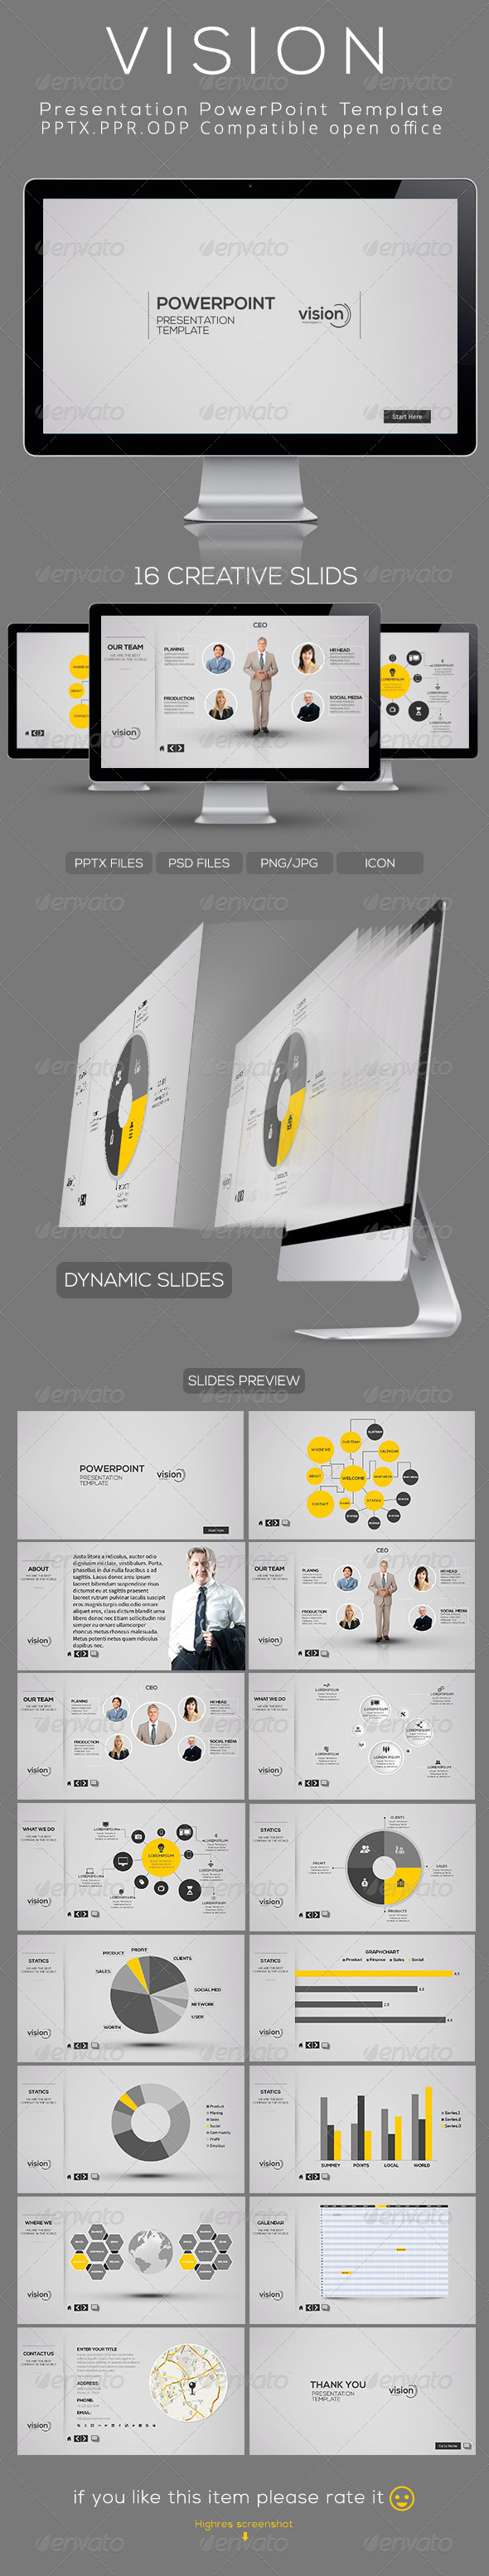 GraphicRiver Vision Powerpoint Presentation Template 4648635